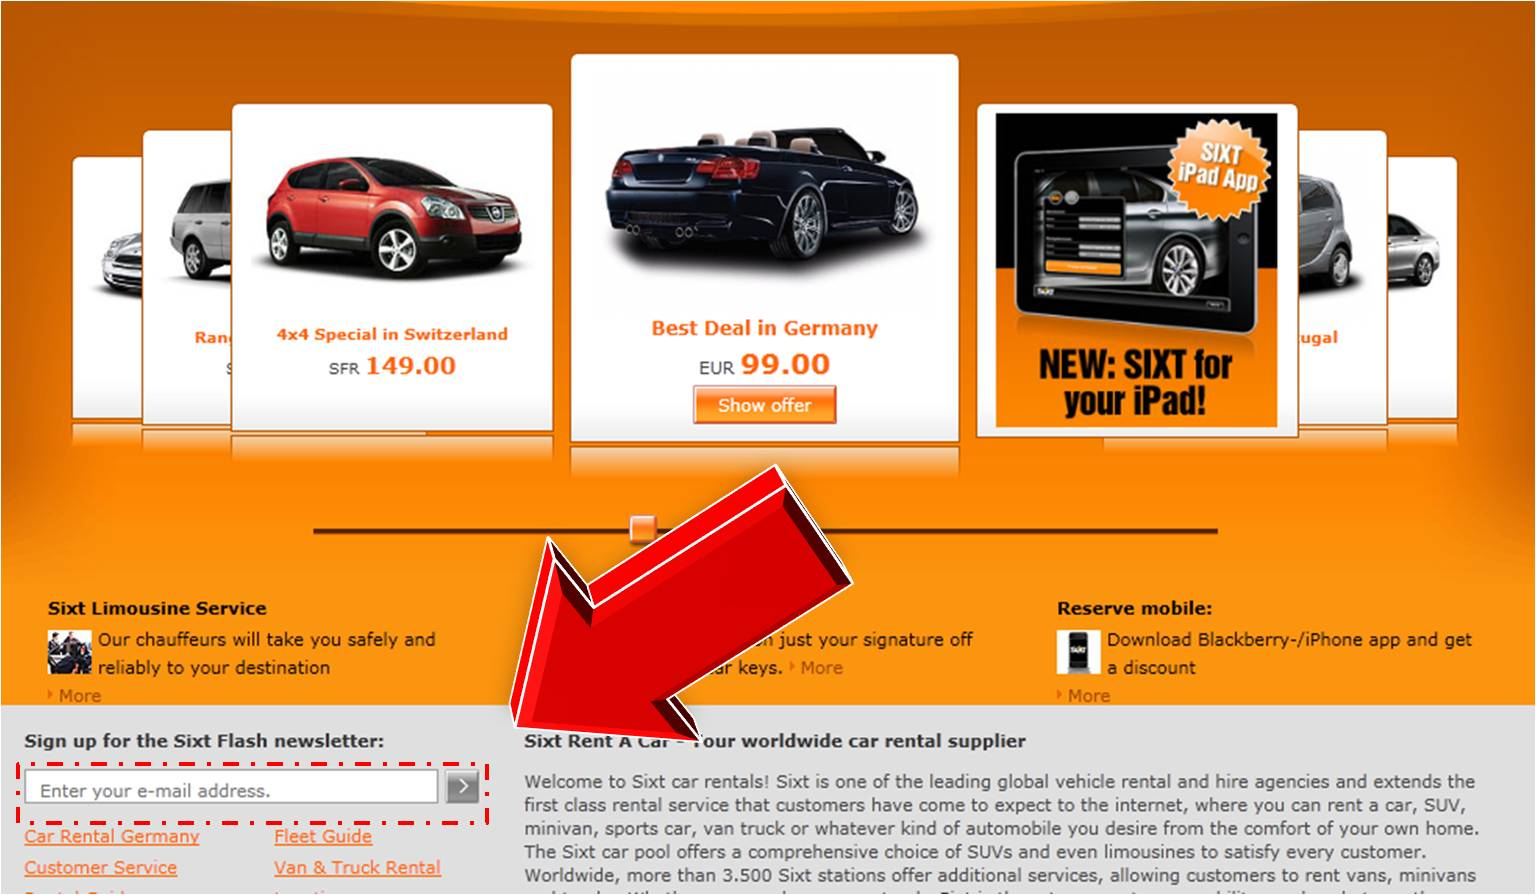 Find Sixt Coupon Codes No matter where you go in the world, you may find Sixt promo codes to help you save money on a car rental. This global car rental brand lets you drive cars to a single destination, plus choose your range of car from a sporty convertible to a roomy minivan.